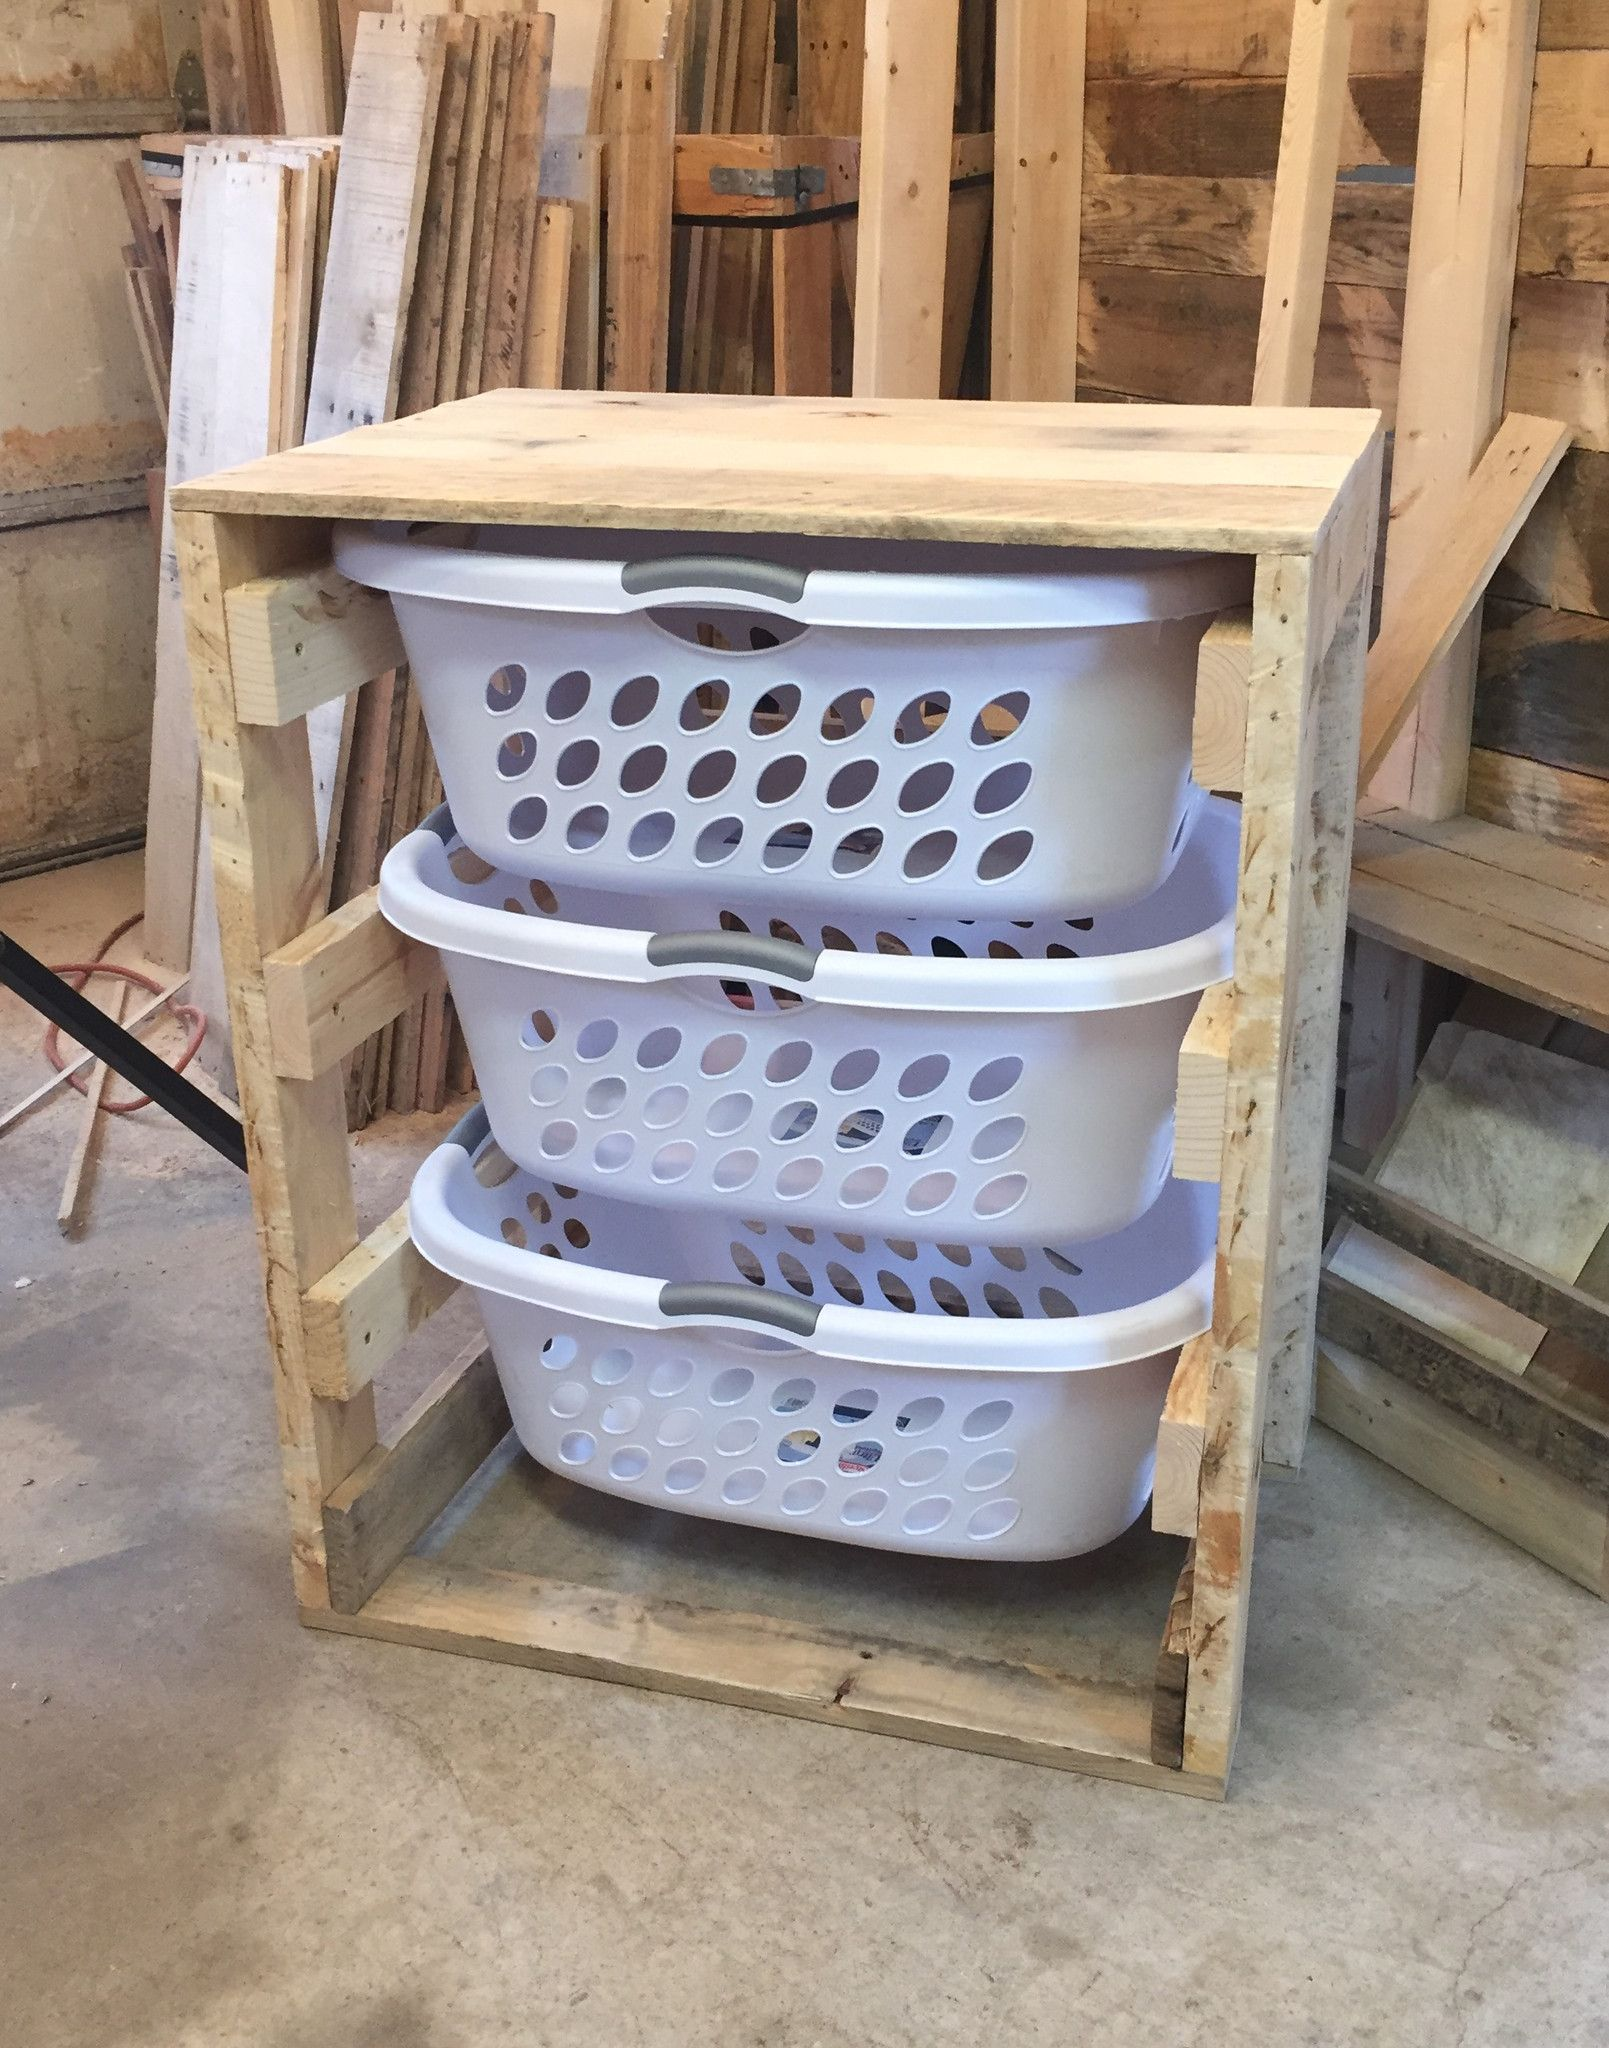 Laundry Basket Dresser Maybe Put Doors On It To Conceal It And Keep It Organized Need A Good Lau Laundry Basket Dresser Diy Laundry Laundry Room Organization